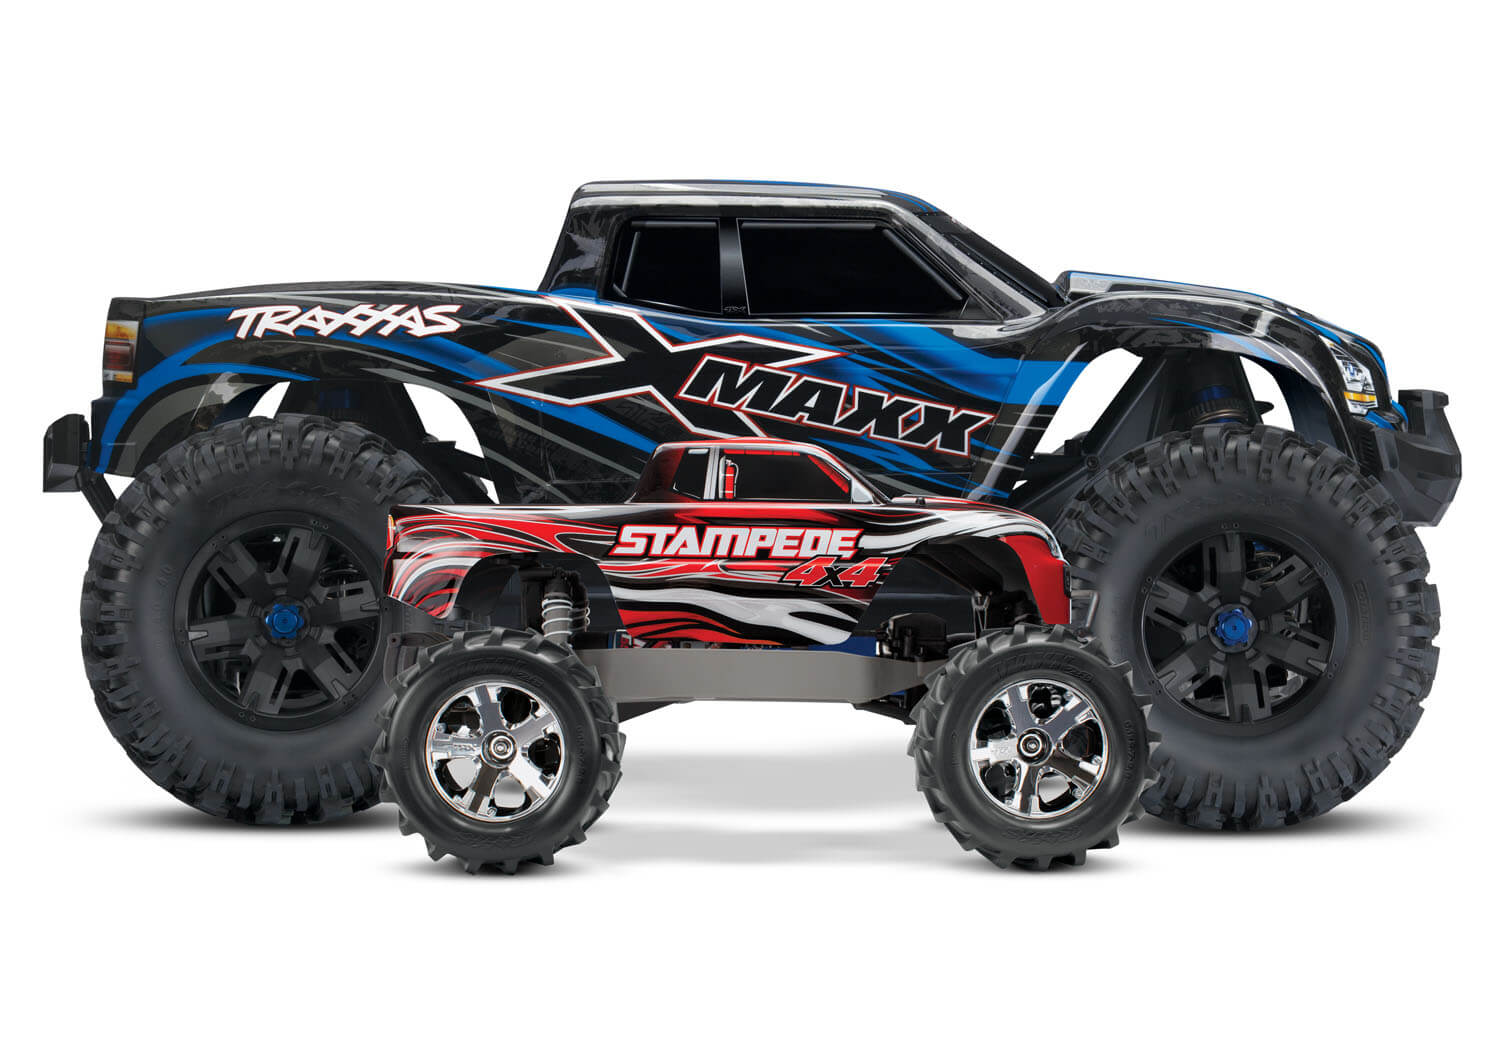 rc 4x4 monster trucks with 5 Traxxas Trx77076 4 on 311775241018 furthermore Ford F650 4x4 For Sale Extreme Super Trucks together with Heres Every Photo Arrmas New 4x4s moreover Rc4wd Hardcore Slash Chassis Video in addition Sanwa.